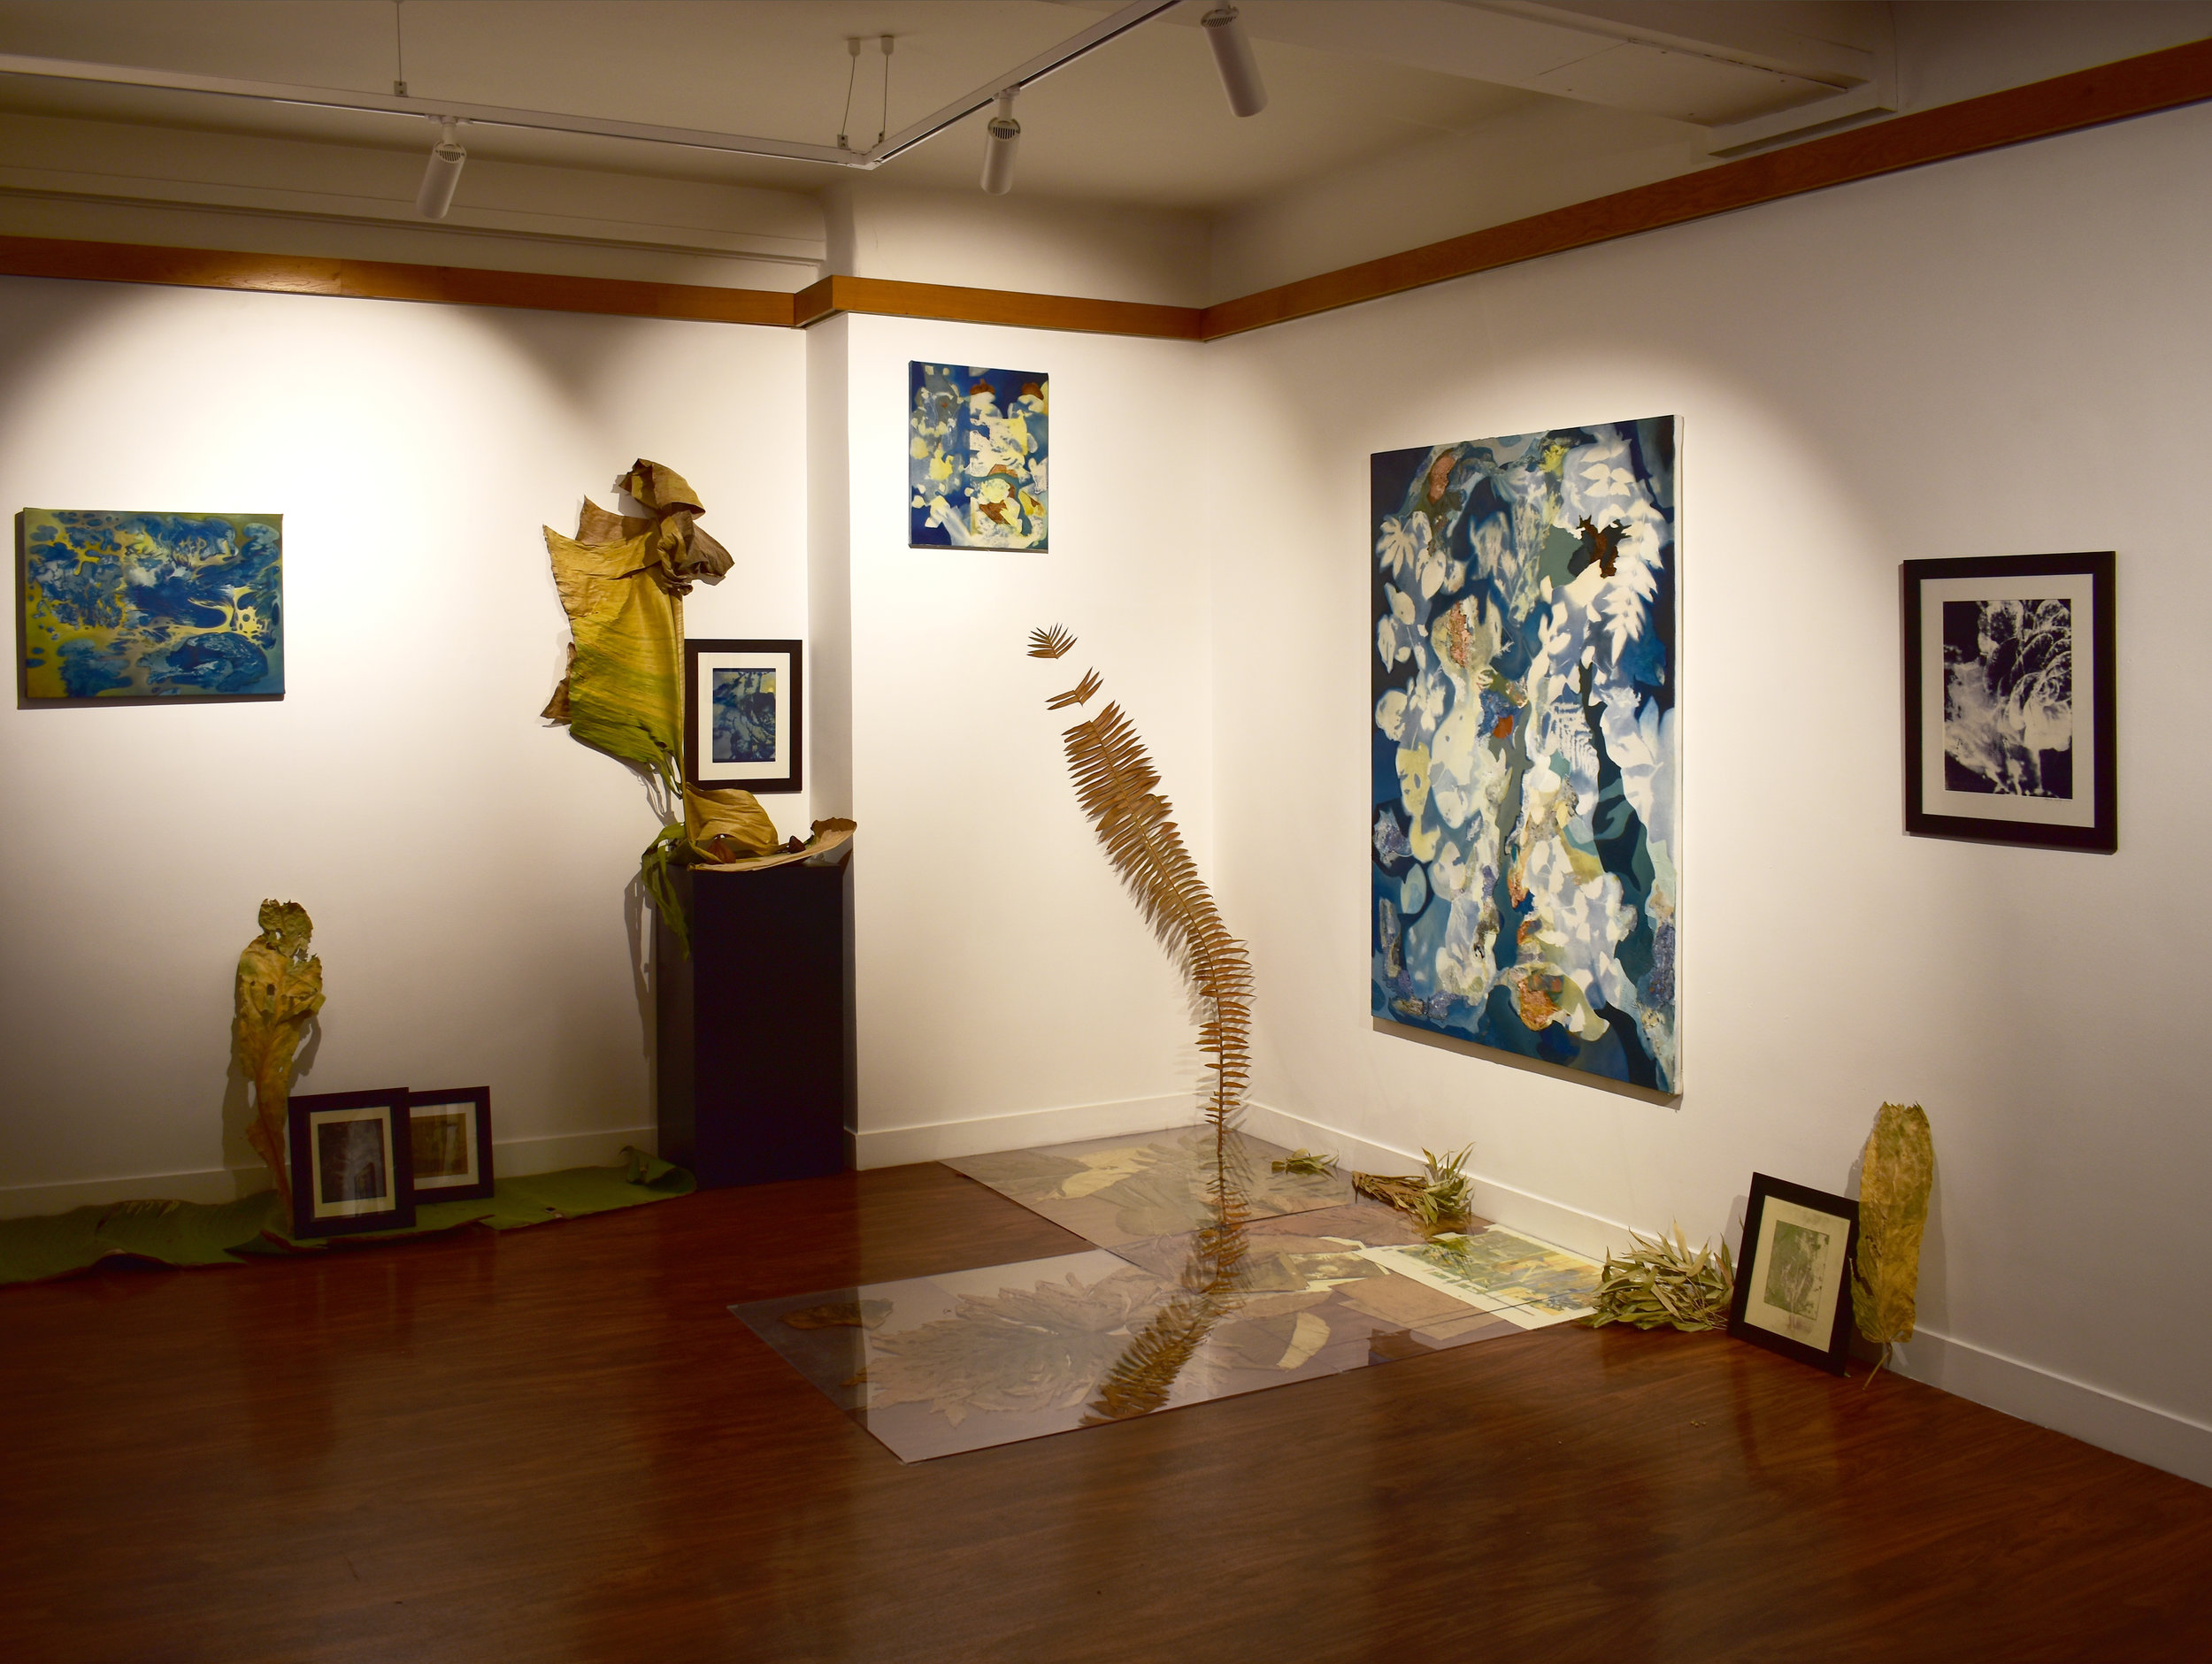 Installation, exhibition,  How to Capture Flow,  January 2018.